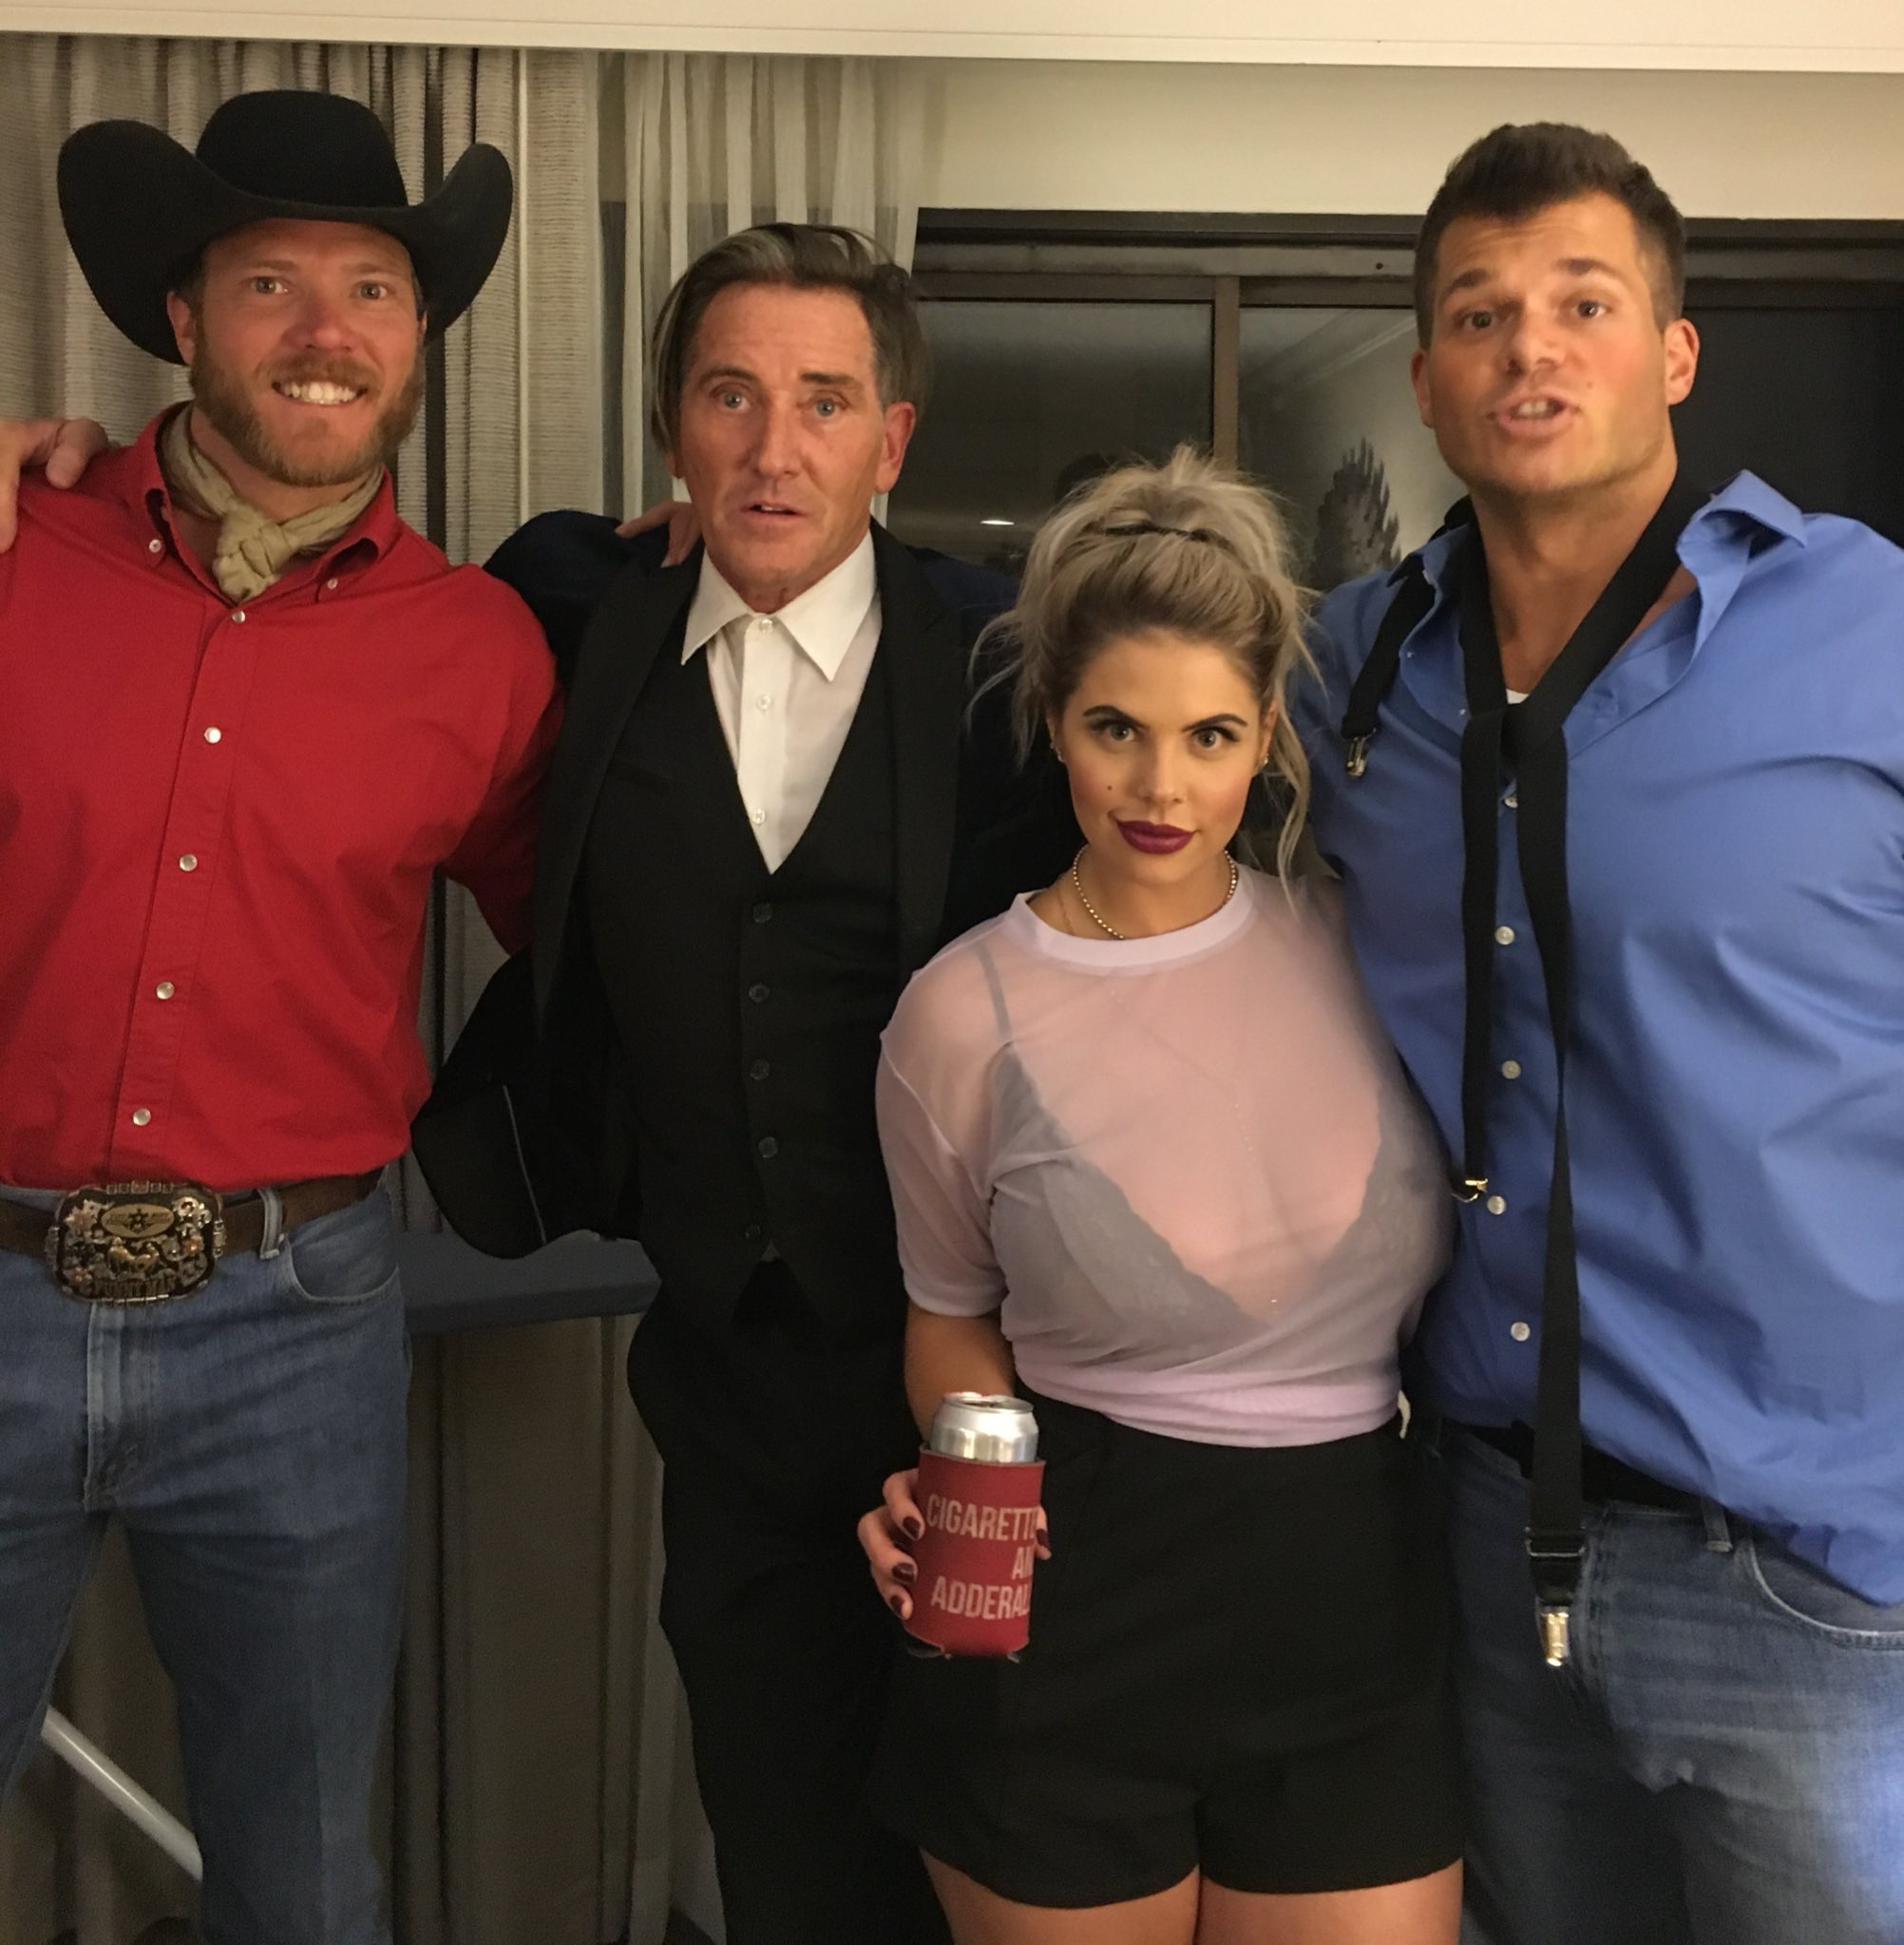 Big Brother 19 Mark Jansen, Elena Davies, Kevin Schlehuber, and Jason Dent